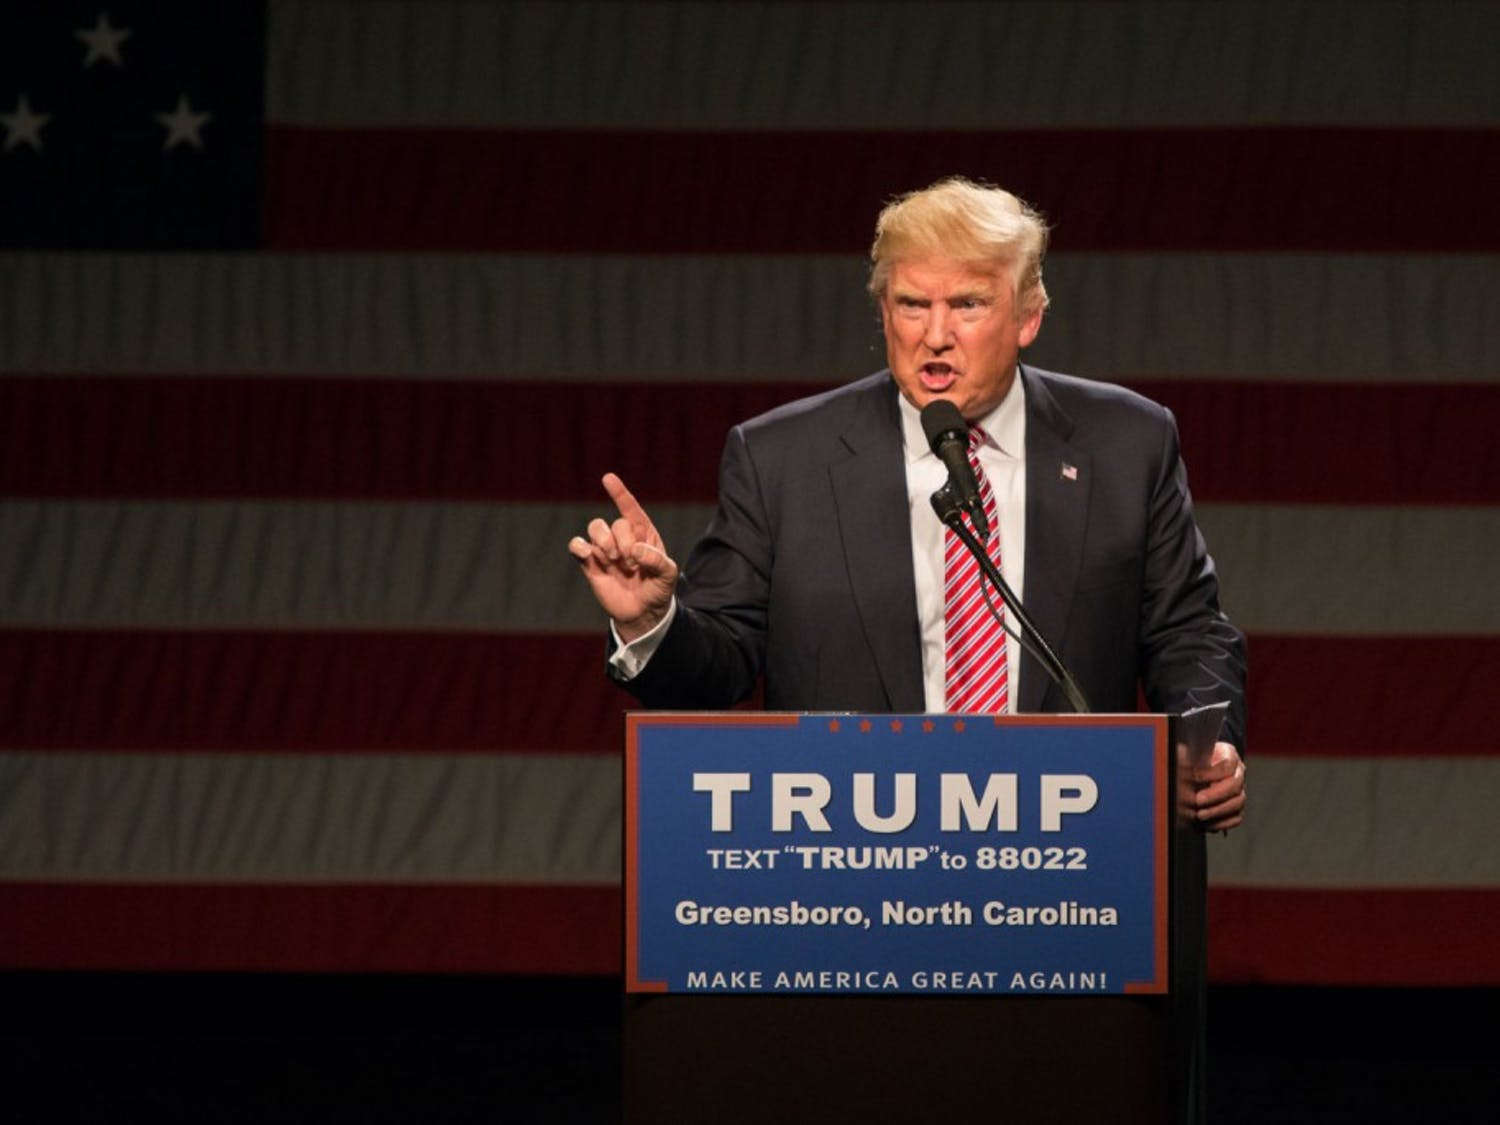 Donald Trump held a rally in the Greensboro Coliseum on Tuesday, June 14th.